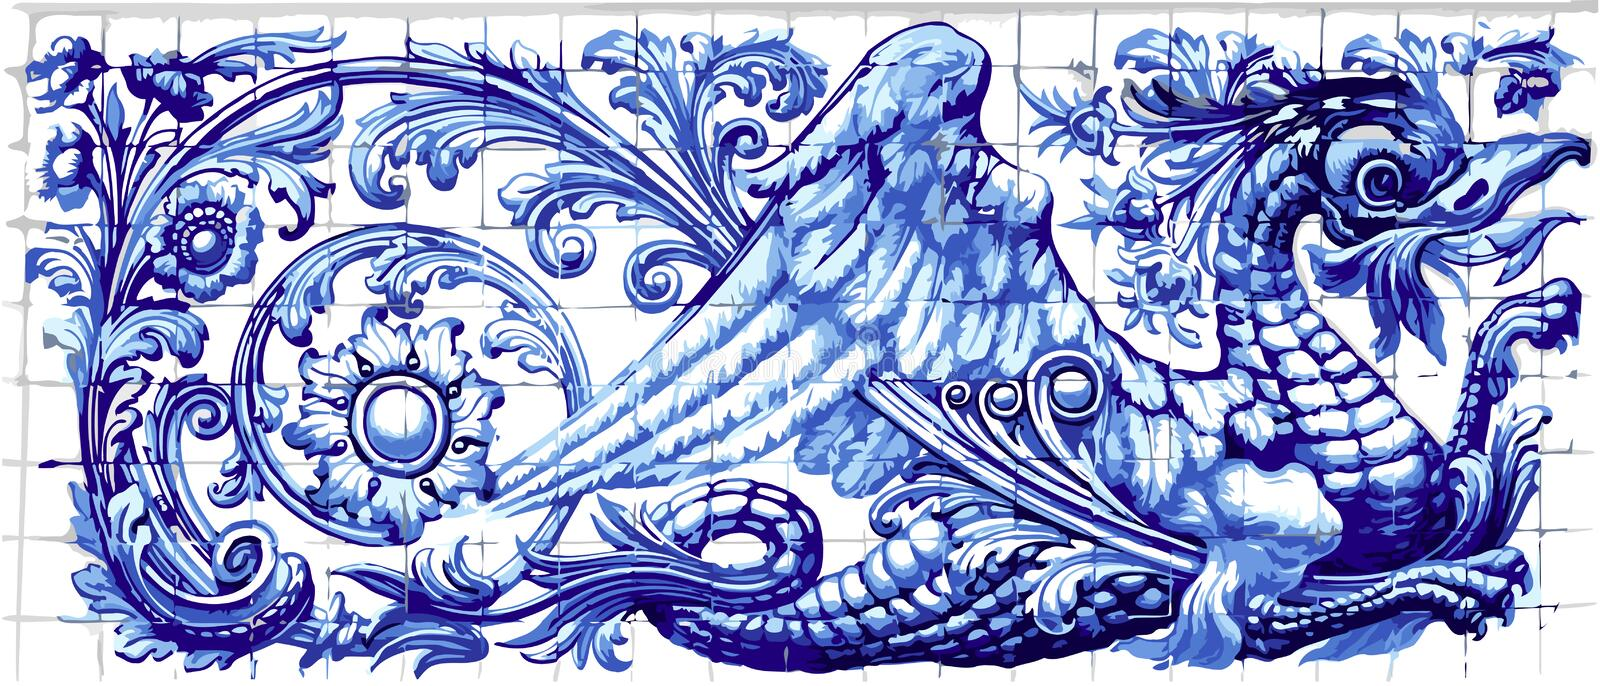 Blue Dragon Azulejo Ceramic Tile Magnet Souvenir Realistic Vector royalty free illustration